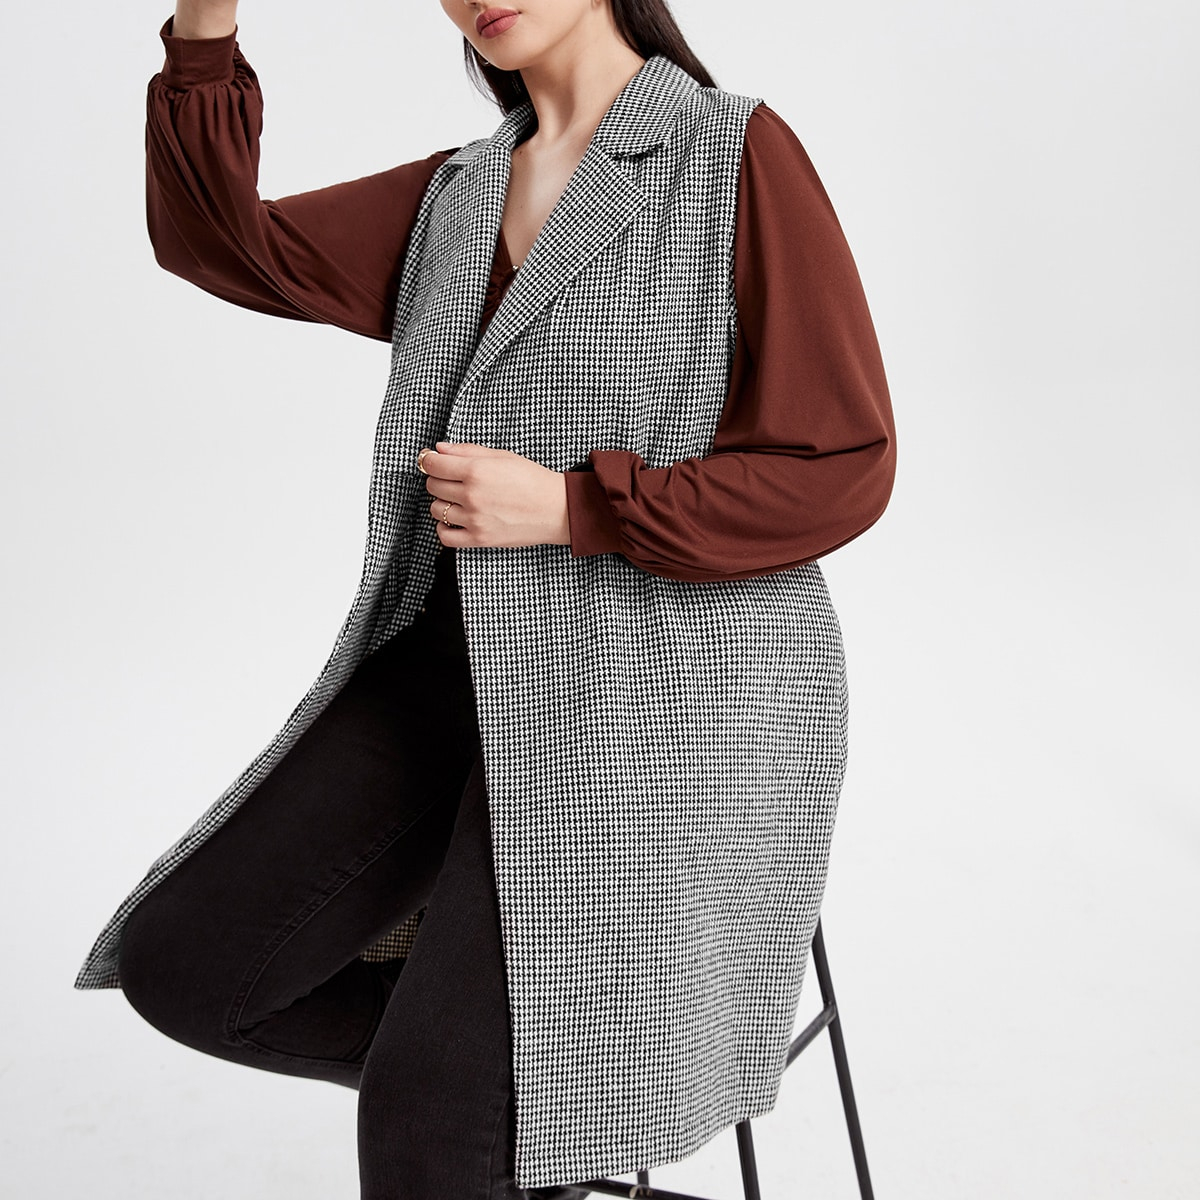 Plus Houndstooth Single Button Belted Vest Coat, SHEIN  - buy with discount